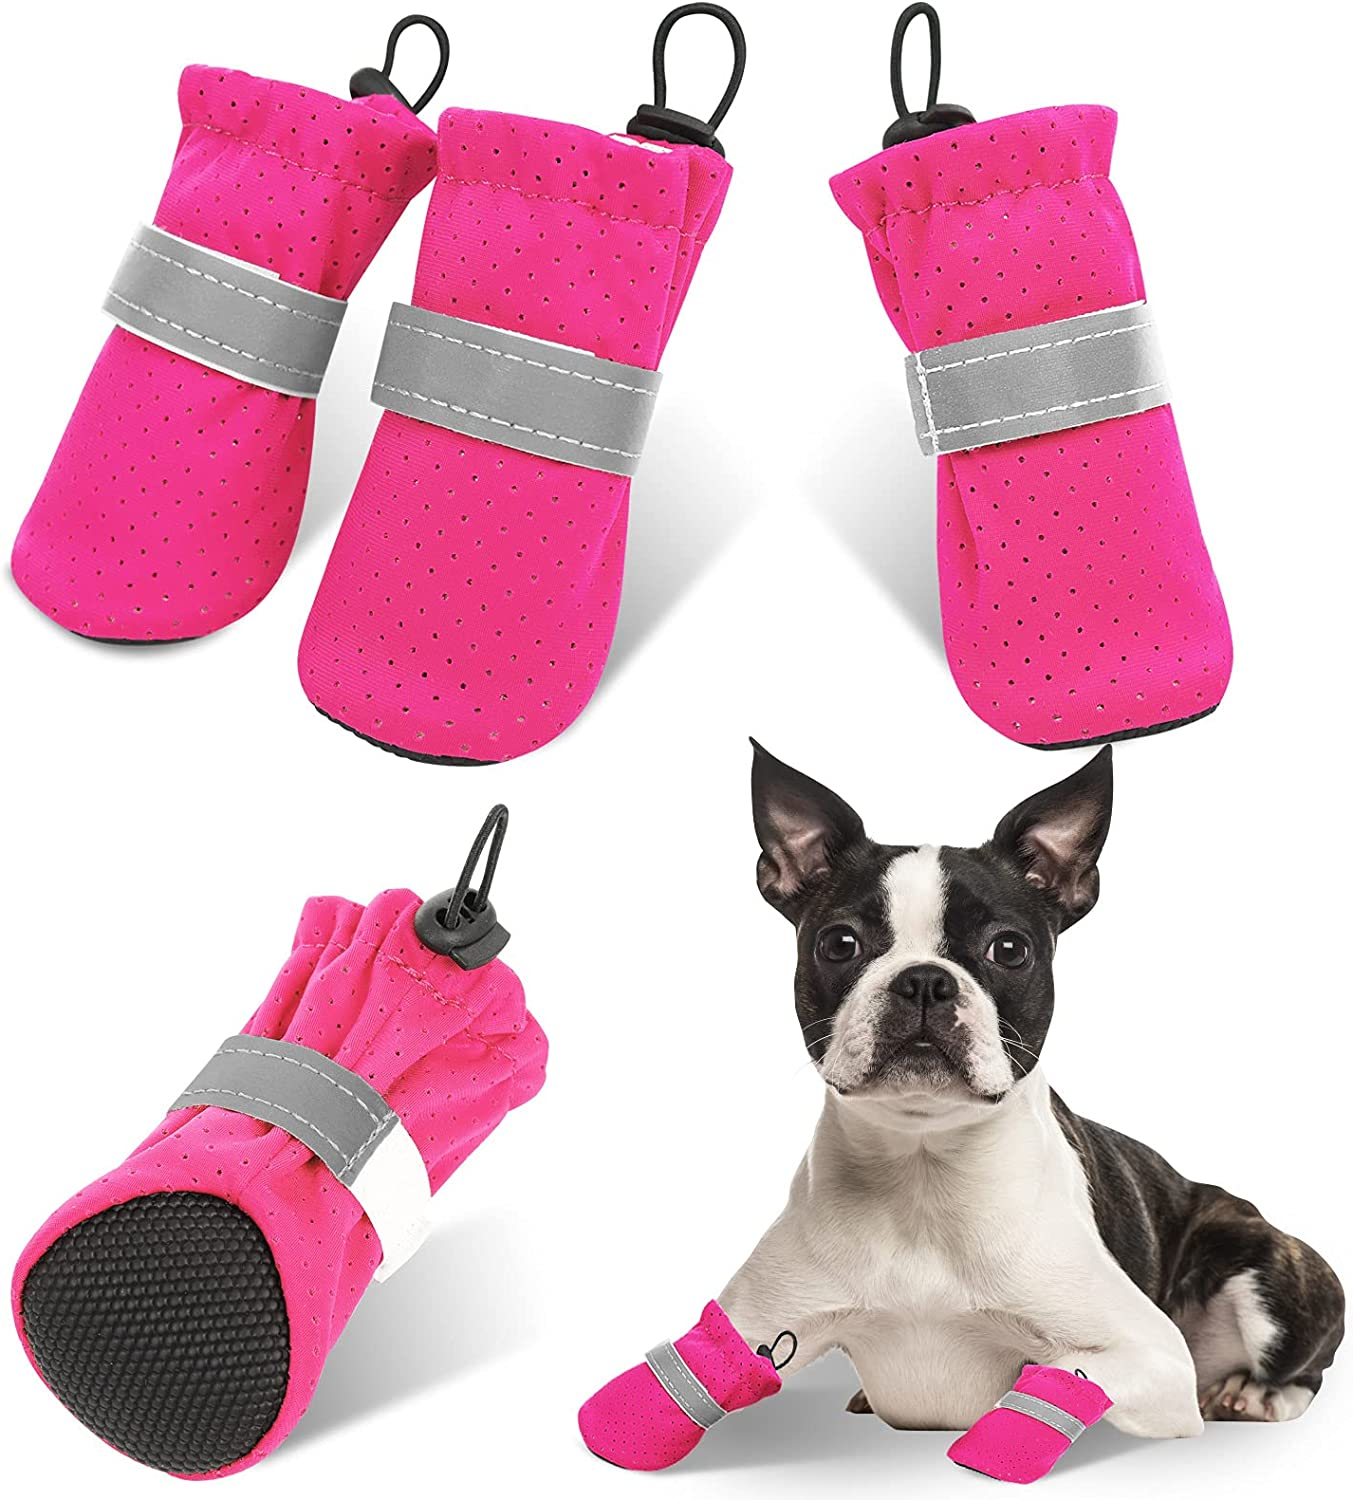 AOFITEE Dog Boots Free shipping on Max 76% OFF posting reviews Soft Puppy Pet Shoes Boot Breathable